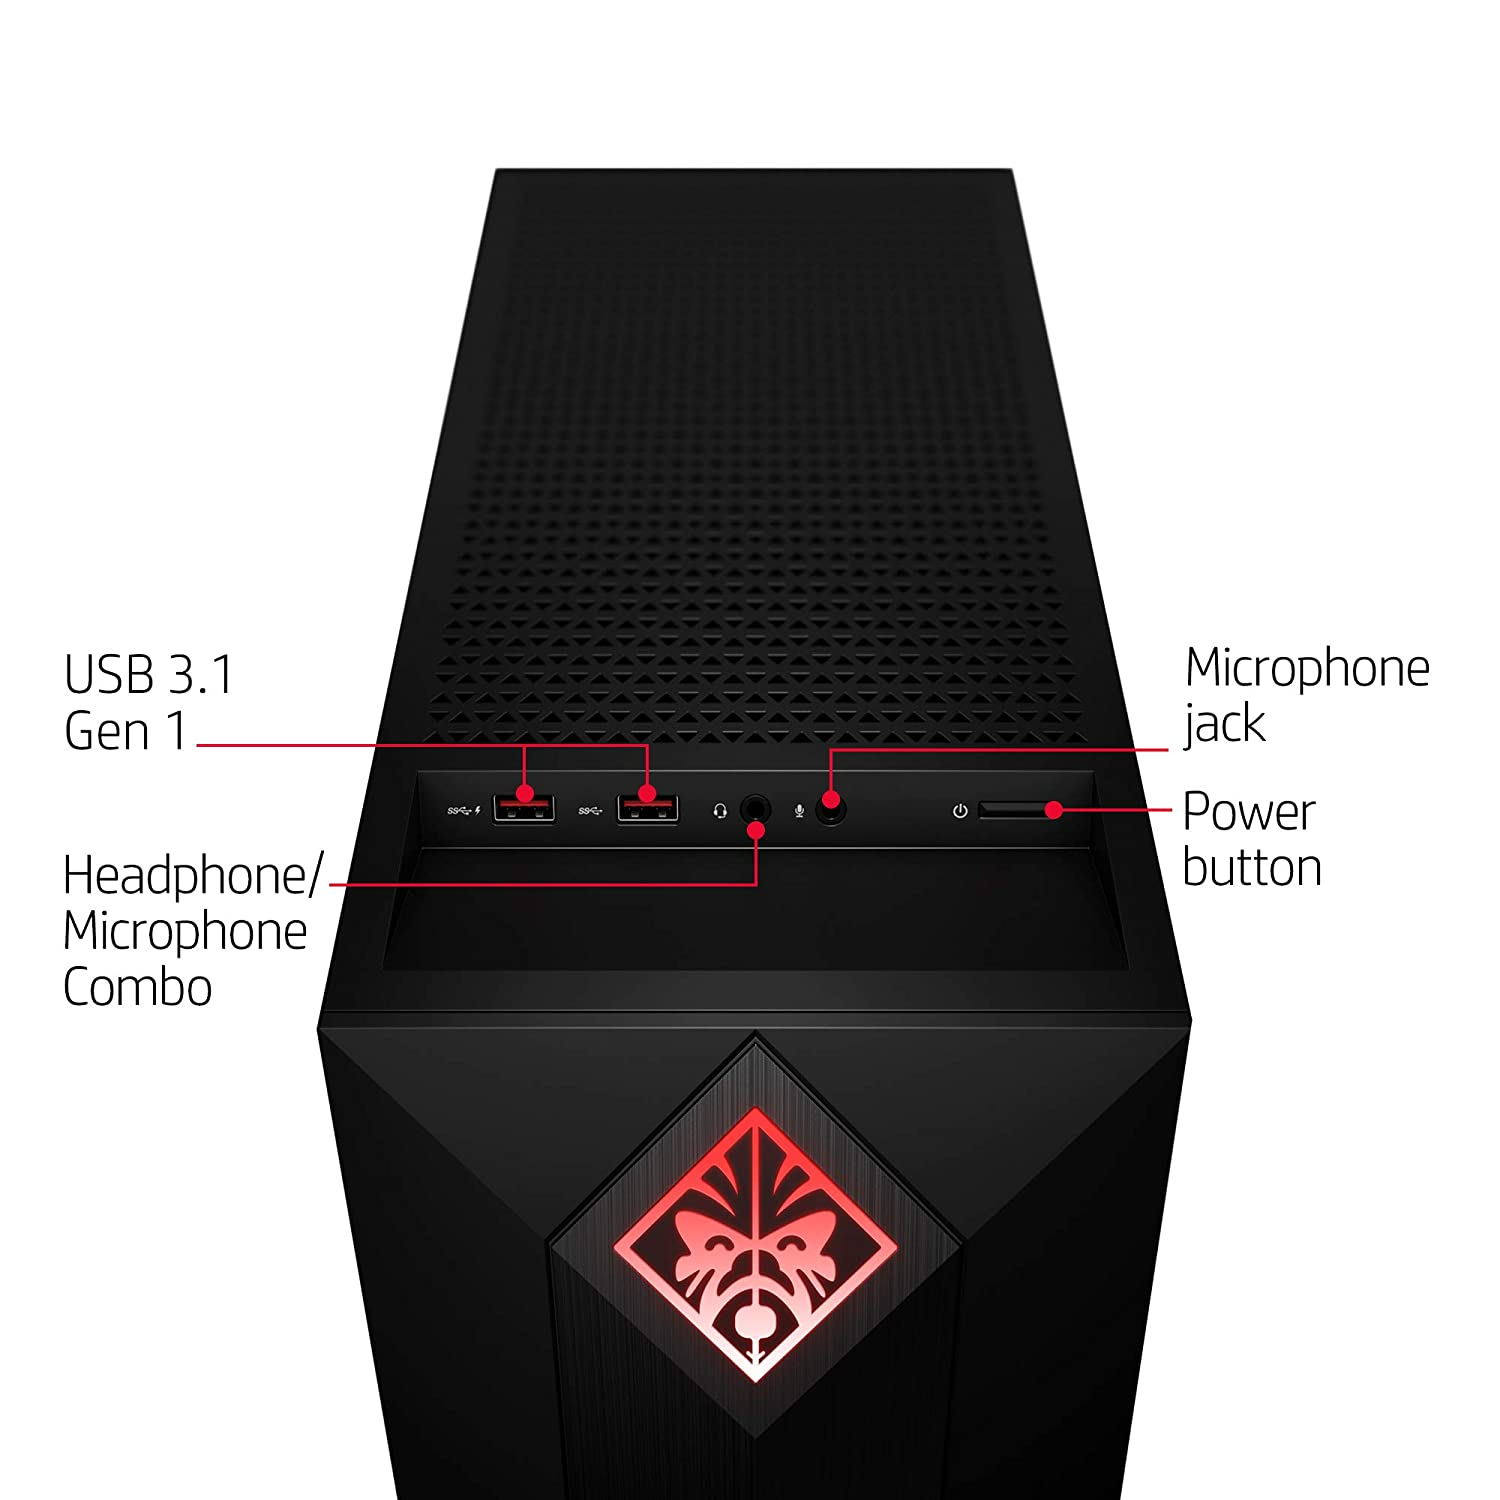 OMEN by HP Obelisk Gaming Desktop Computer, Intel Core i5-8400 Processor,  NVIDIA GeForce GTX 1060 6 GB, HyperX 8 GB RAM, 256 GB SSD, VR Ready,  Windows